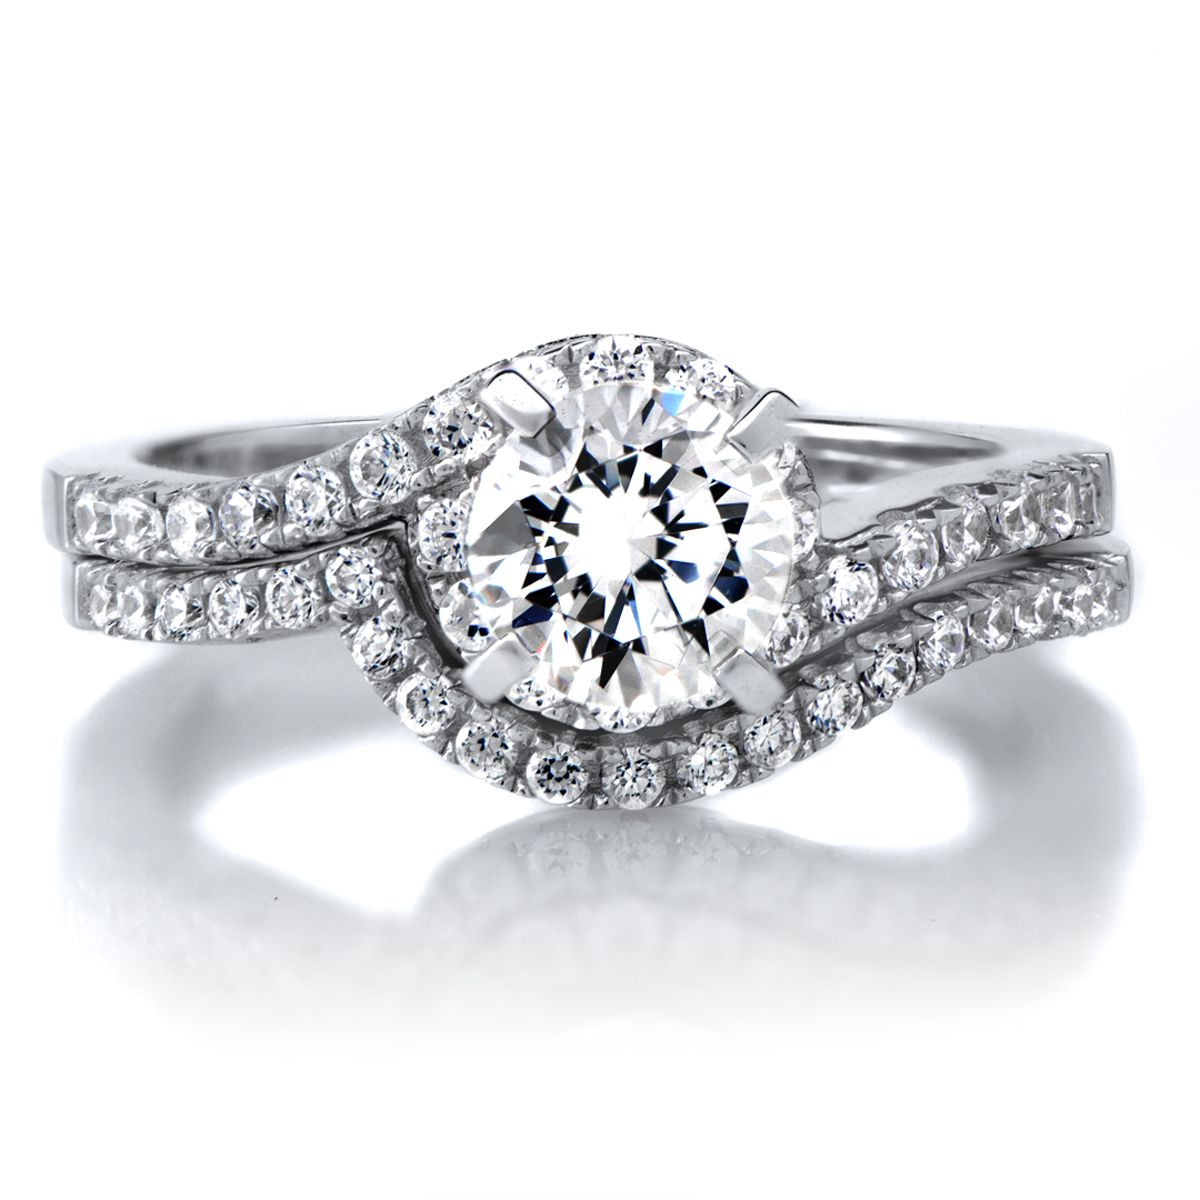 Annabelles 1ct Round Cut CZ Wedding Ring Set The Proposal